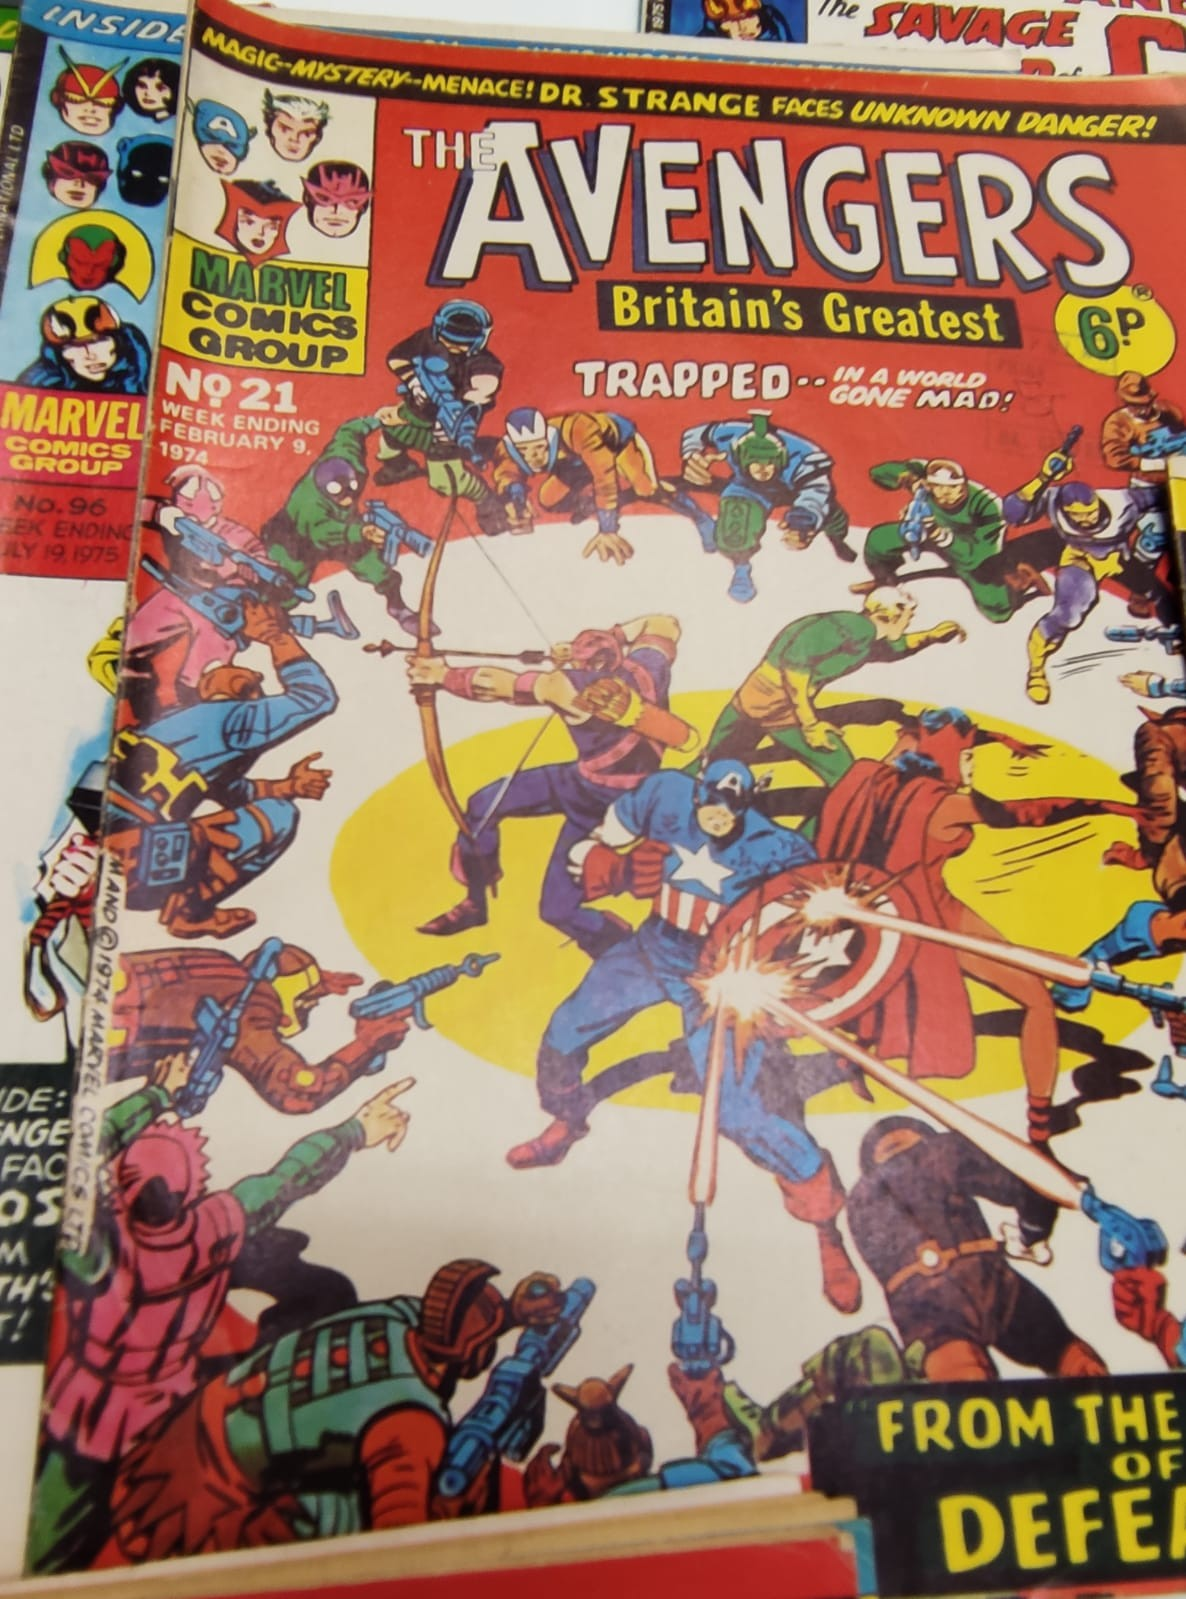 25 x Marvel comics. The Avengers. Dating from 1974-1976 - Image 15 of 18